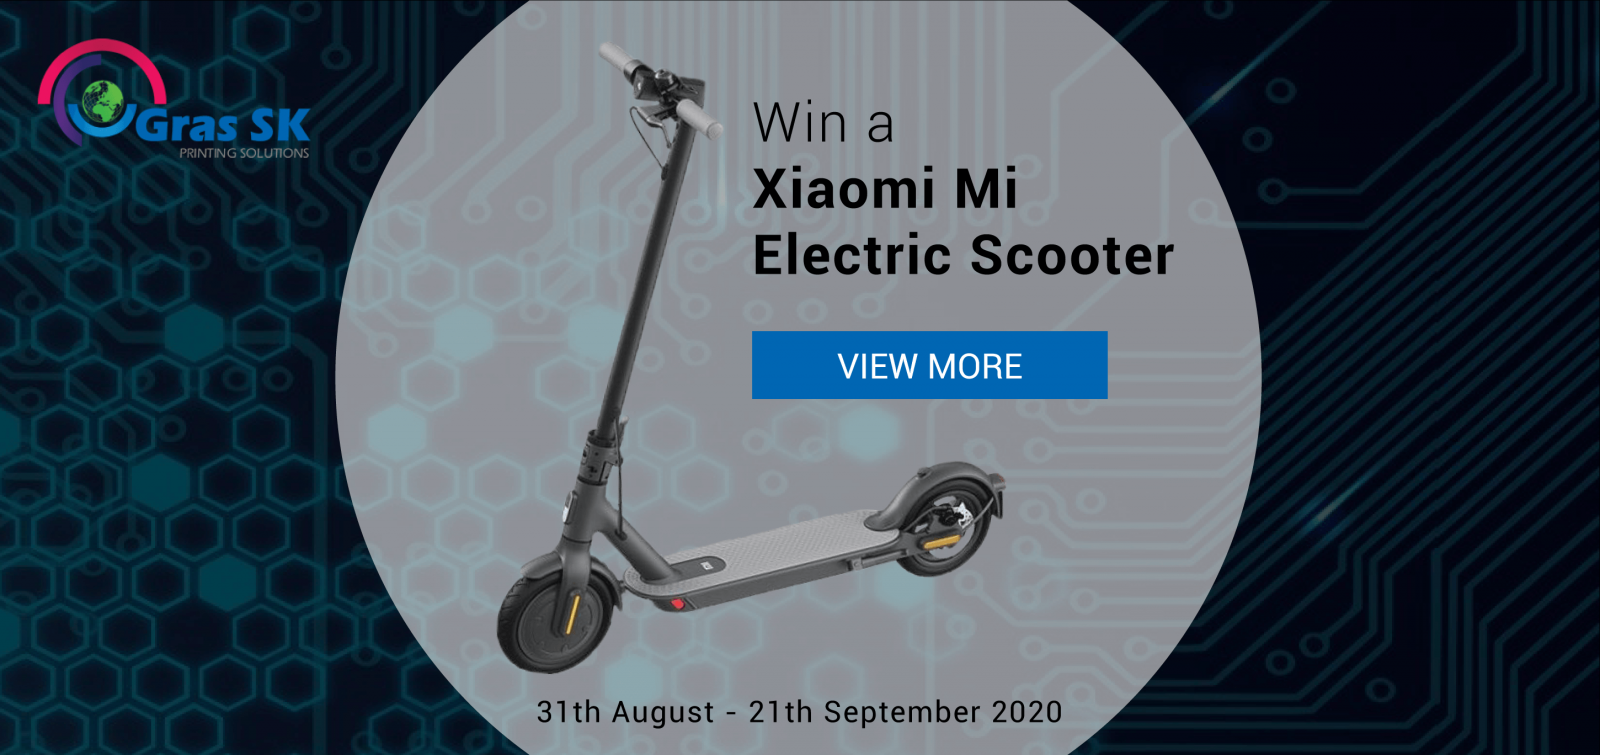 win-a-xiaomi-mi-electric-scooter-2.png